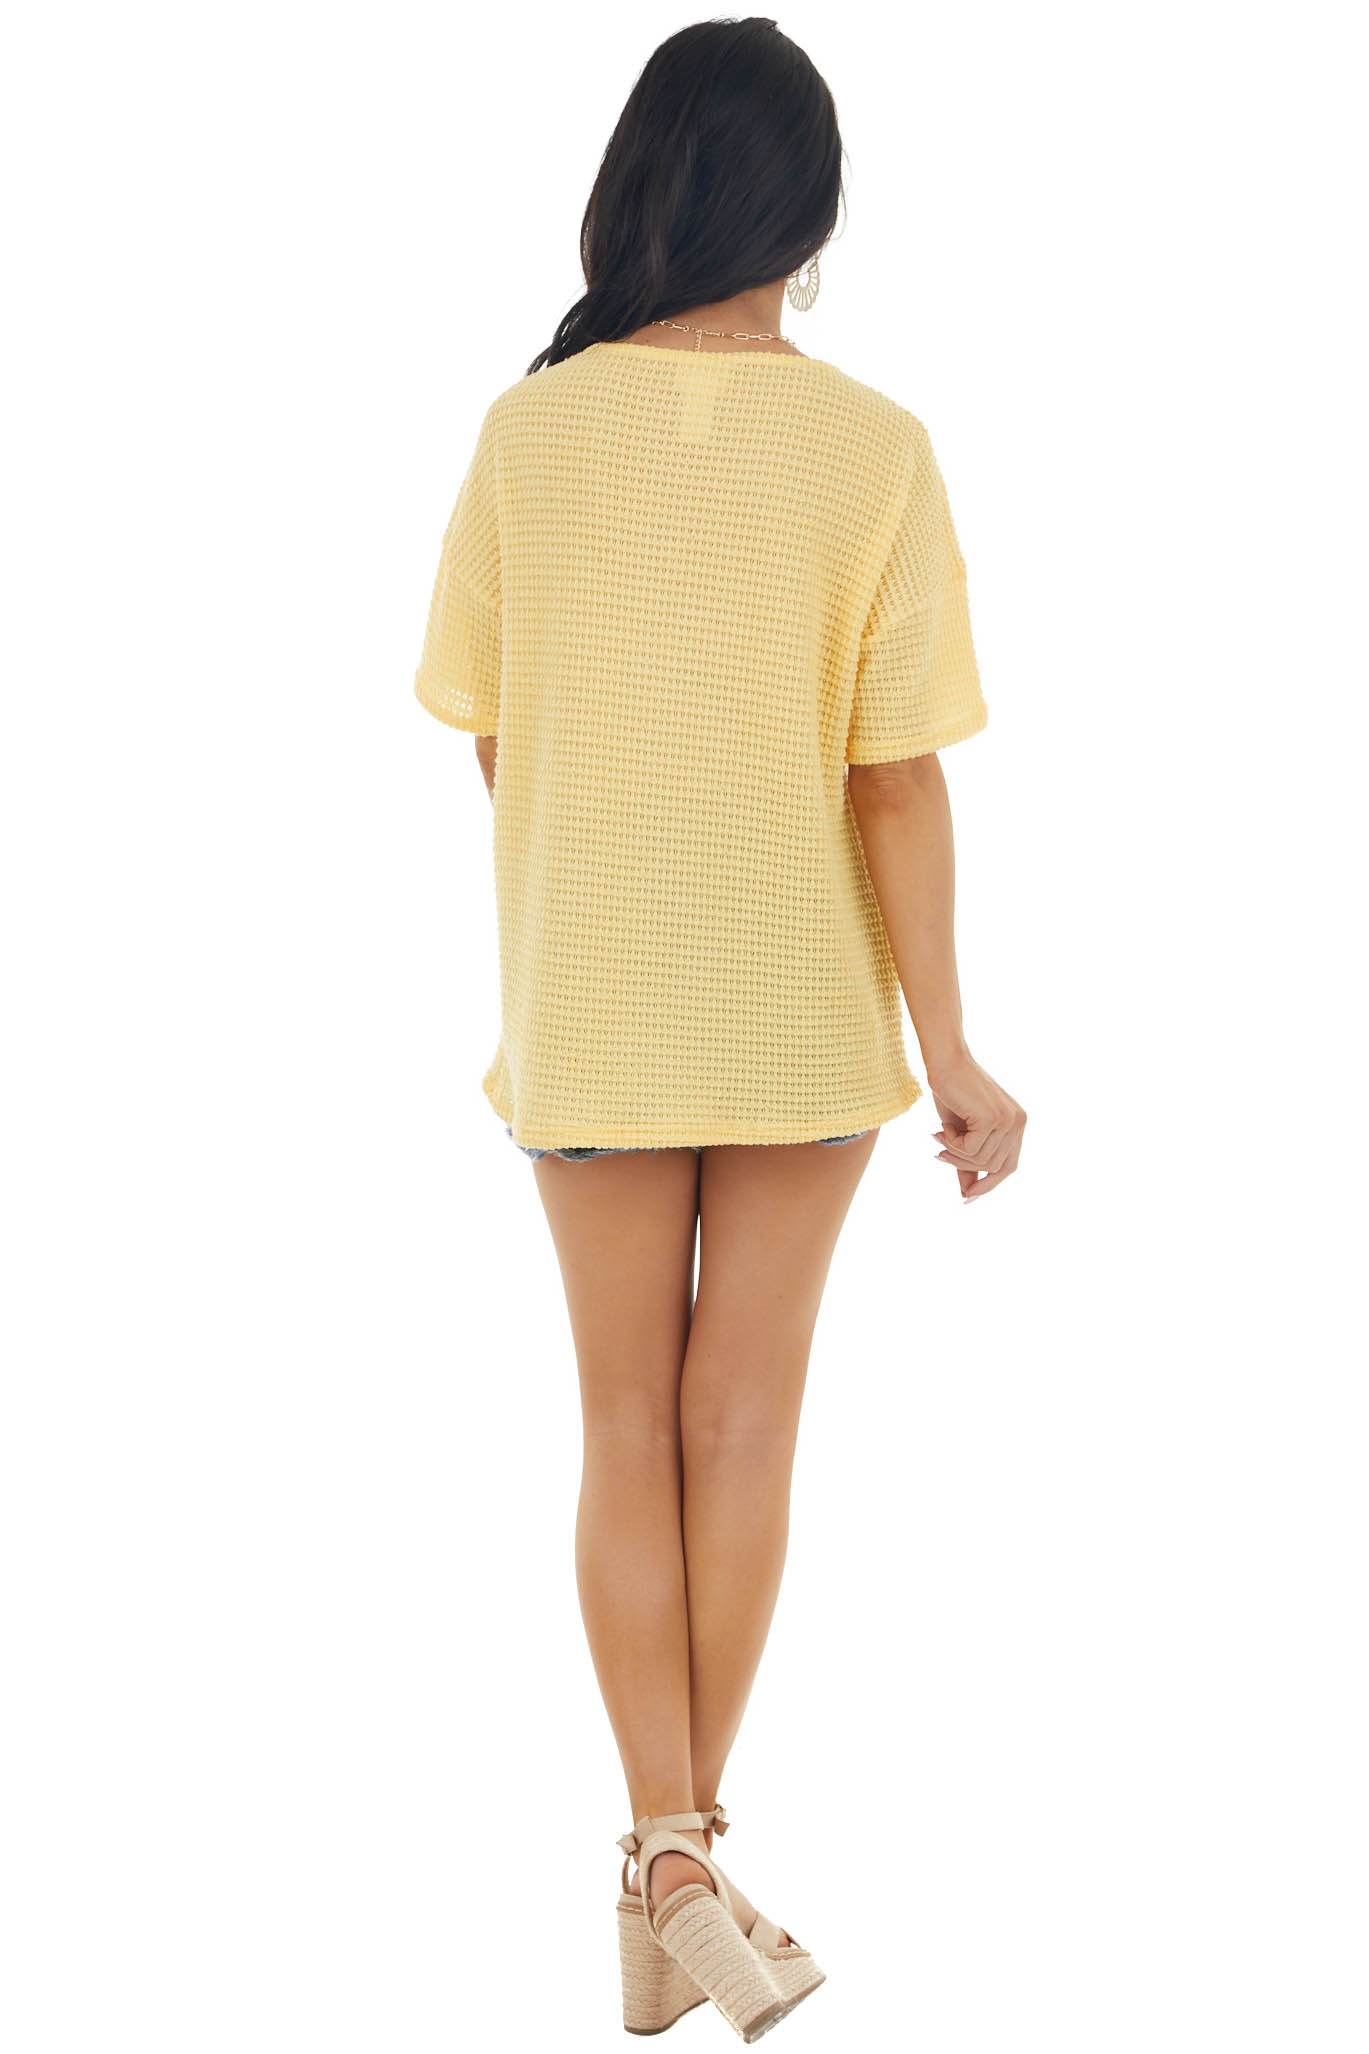 Amber Waffle Knit V Neck Short Sleeve Top with Lace Detail